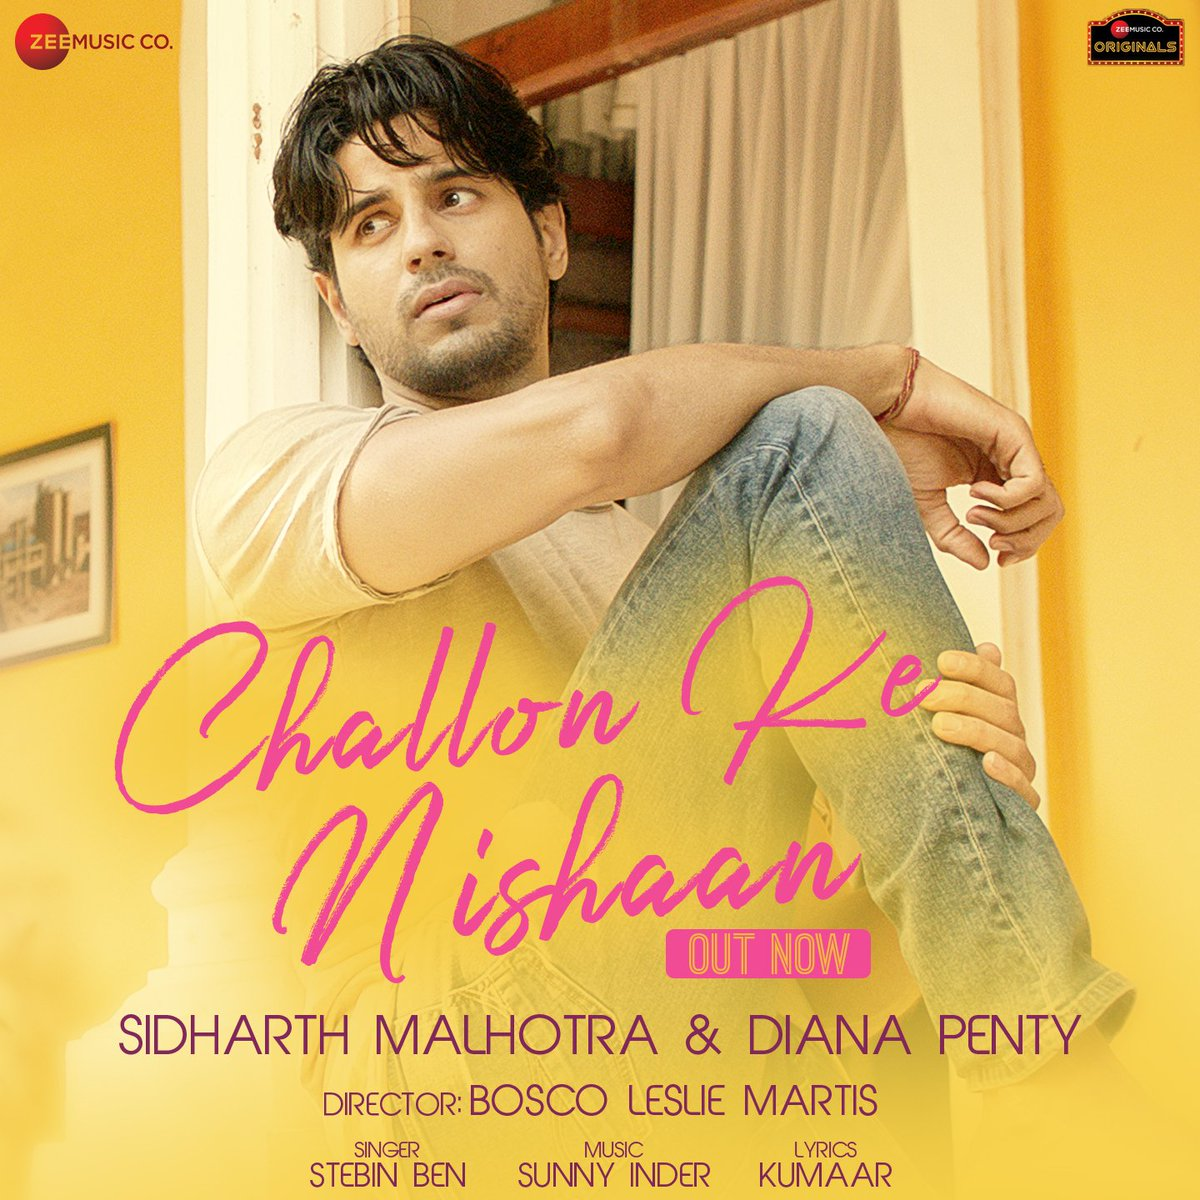 Video is wonderfully executed 😍 #ChallonKeNishaan song is OUT  NOW!! . >>  . #ZeeMusicOriginals @SidMalhotra all hearts to you ❤@DianaPenty @kumaarofficial #SunnyInder @BoscoMartis @anuragbedi @zeemusiccompany @Team_SidharthM superb song loved it 👍❤